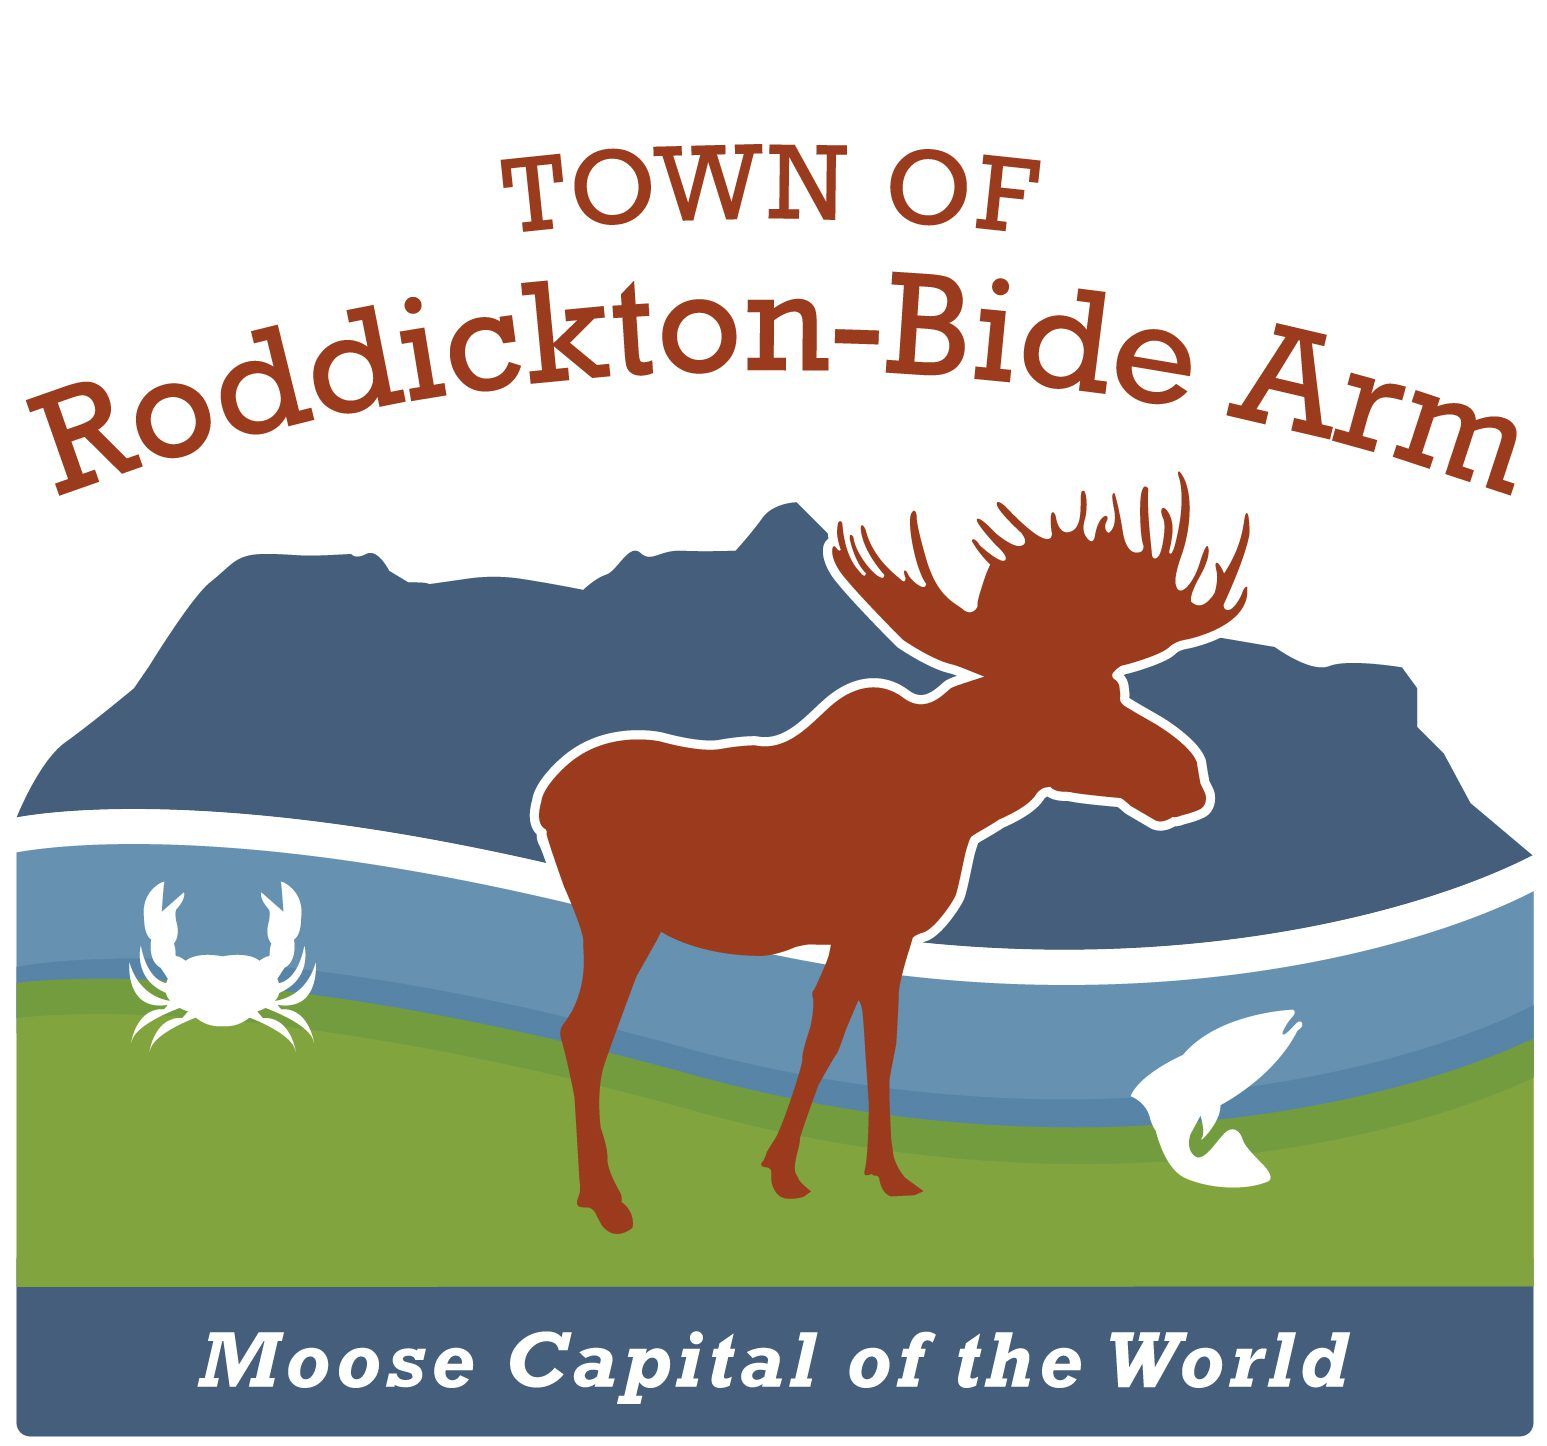 Town of Roddickton-Bide Arm